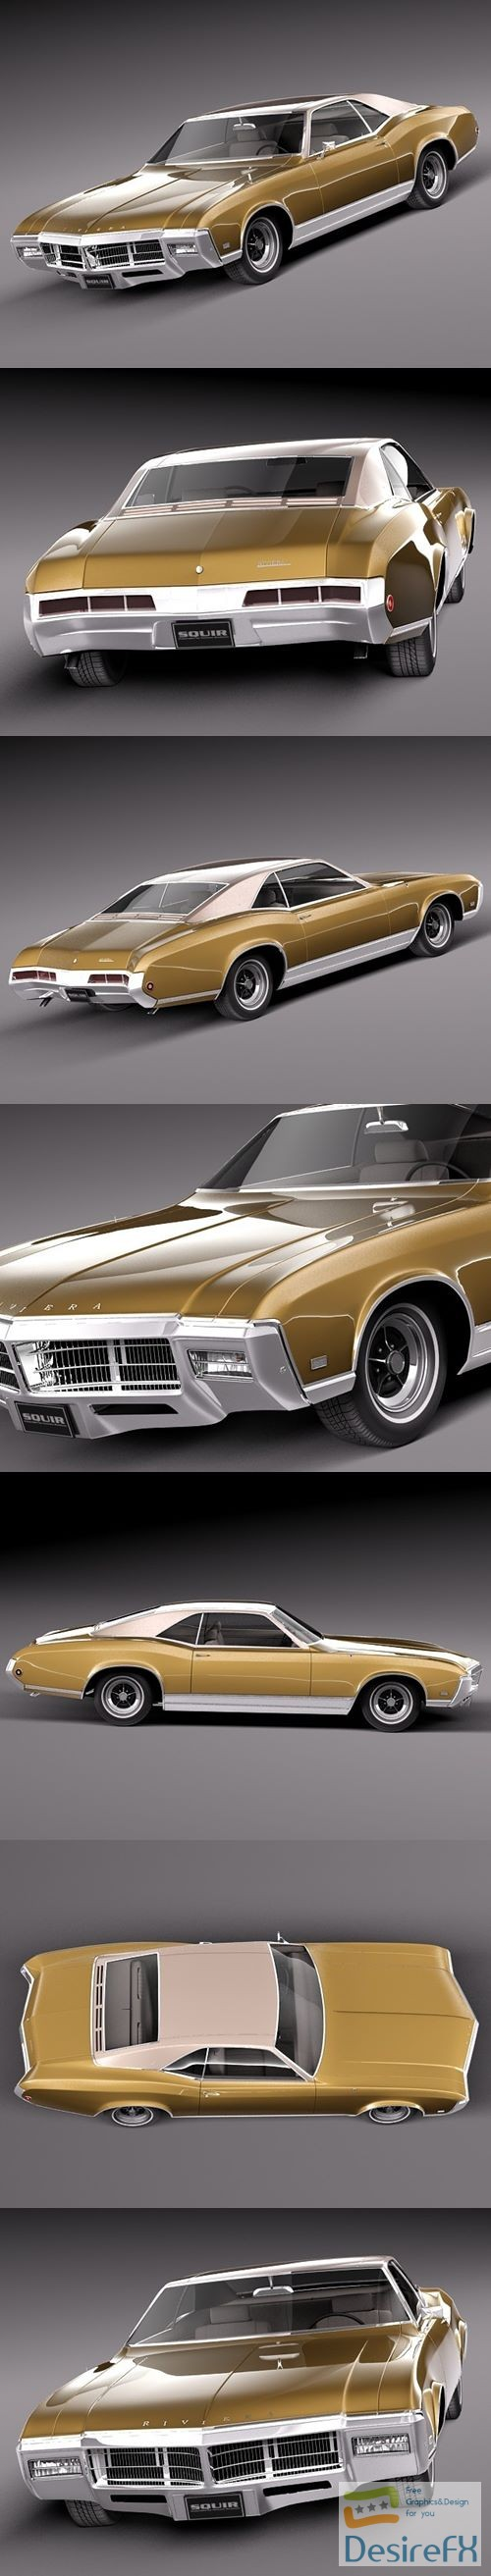 3d-models - Buick Riviera 1969 3D Model